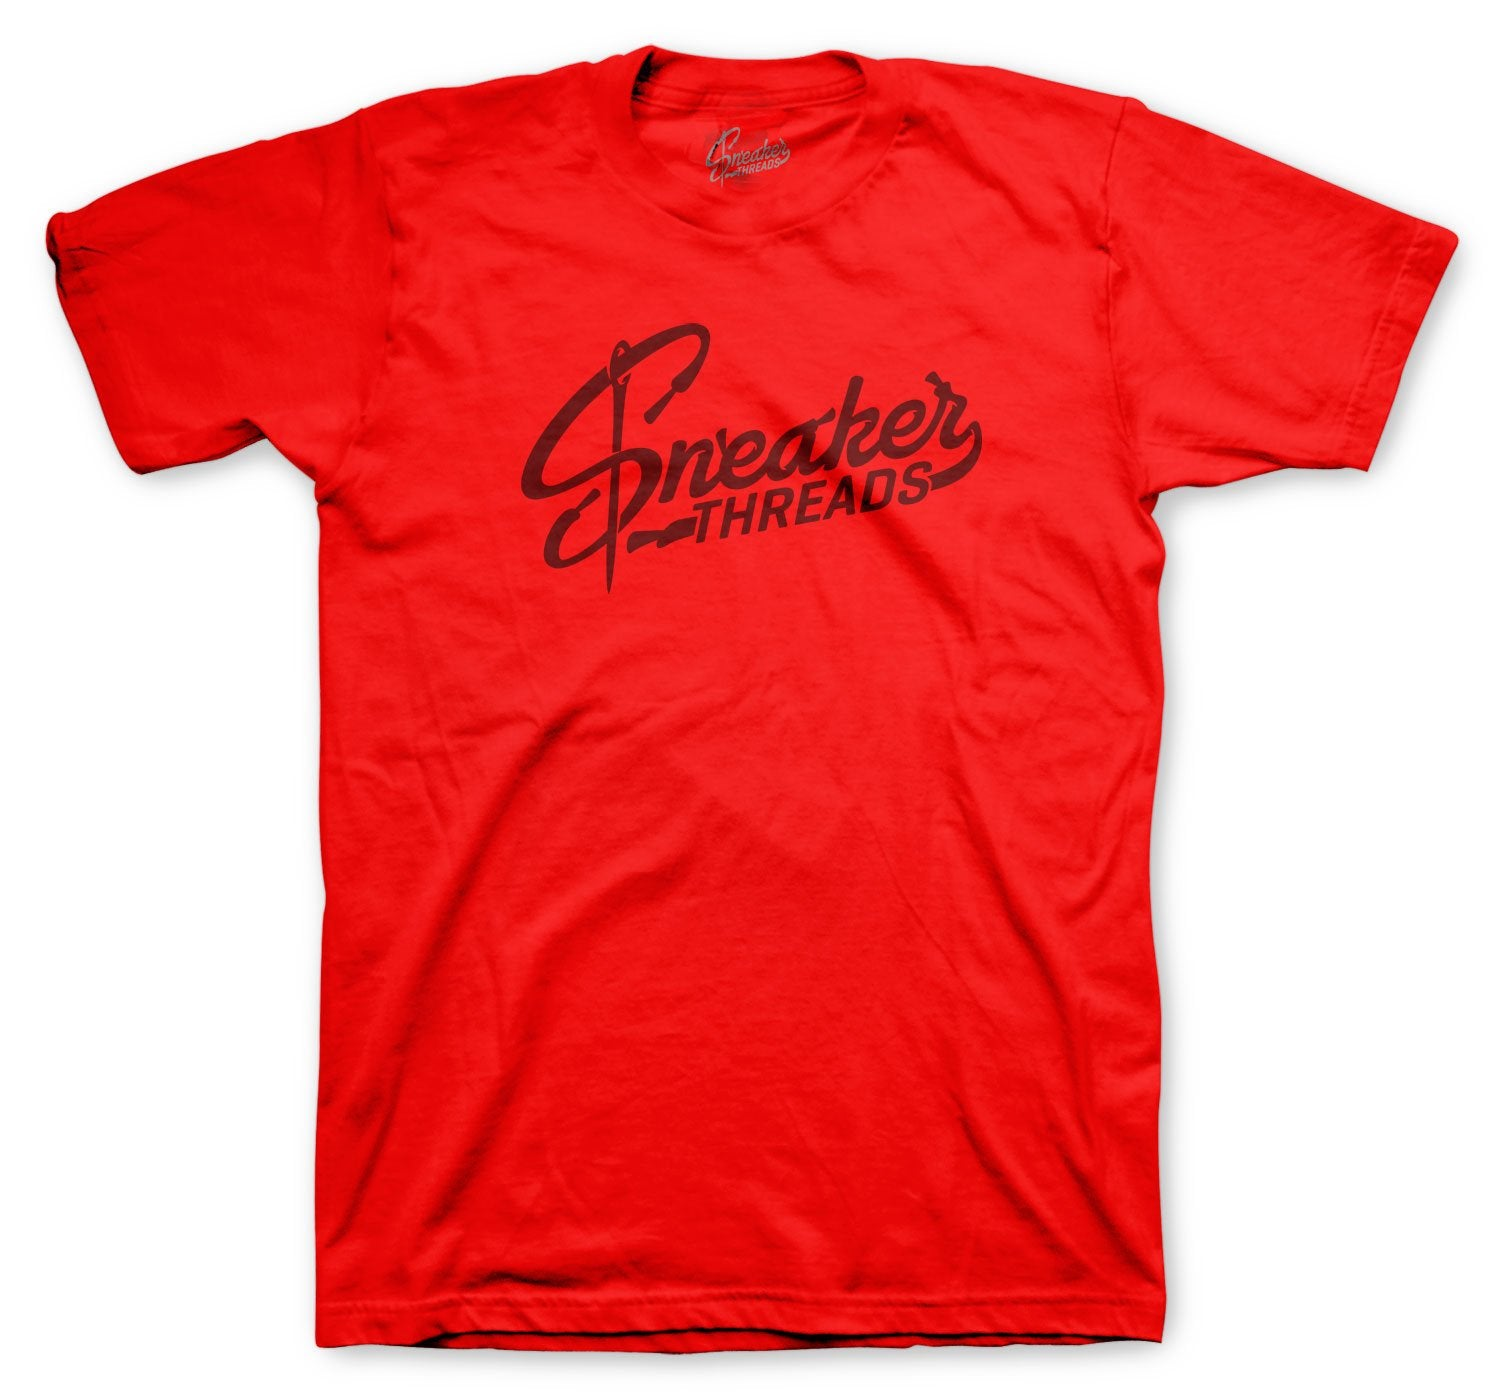 Sneakers tees designed to match the 17 Red carpet sneakers